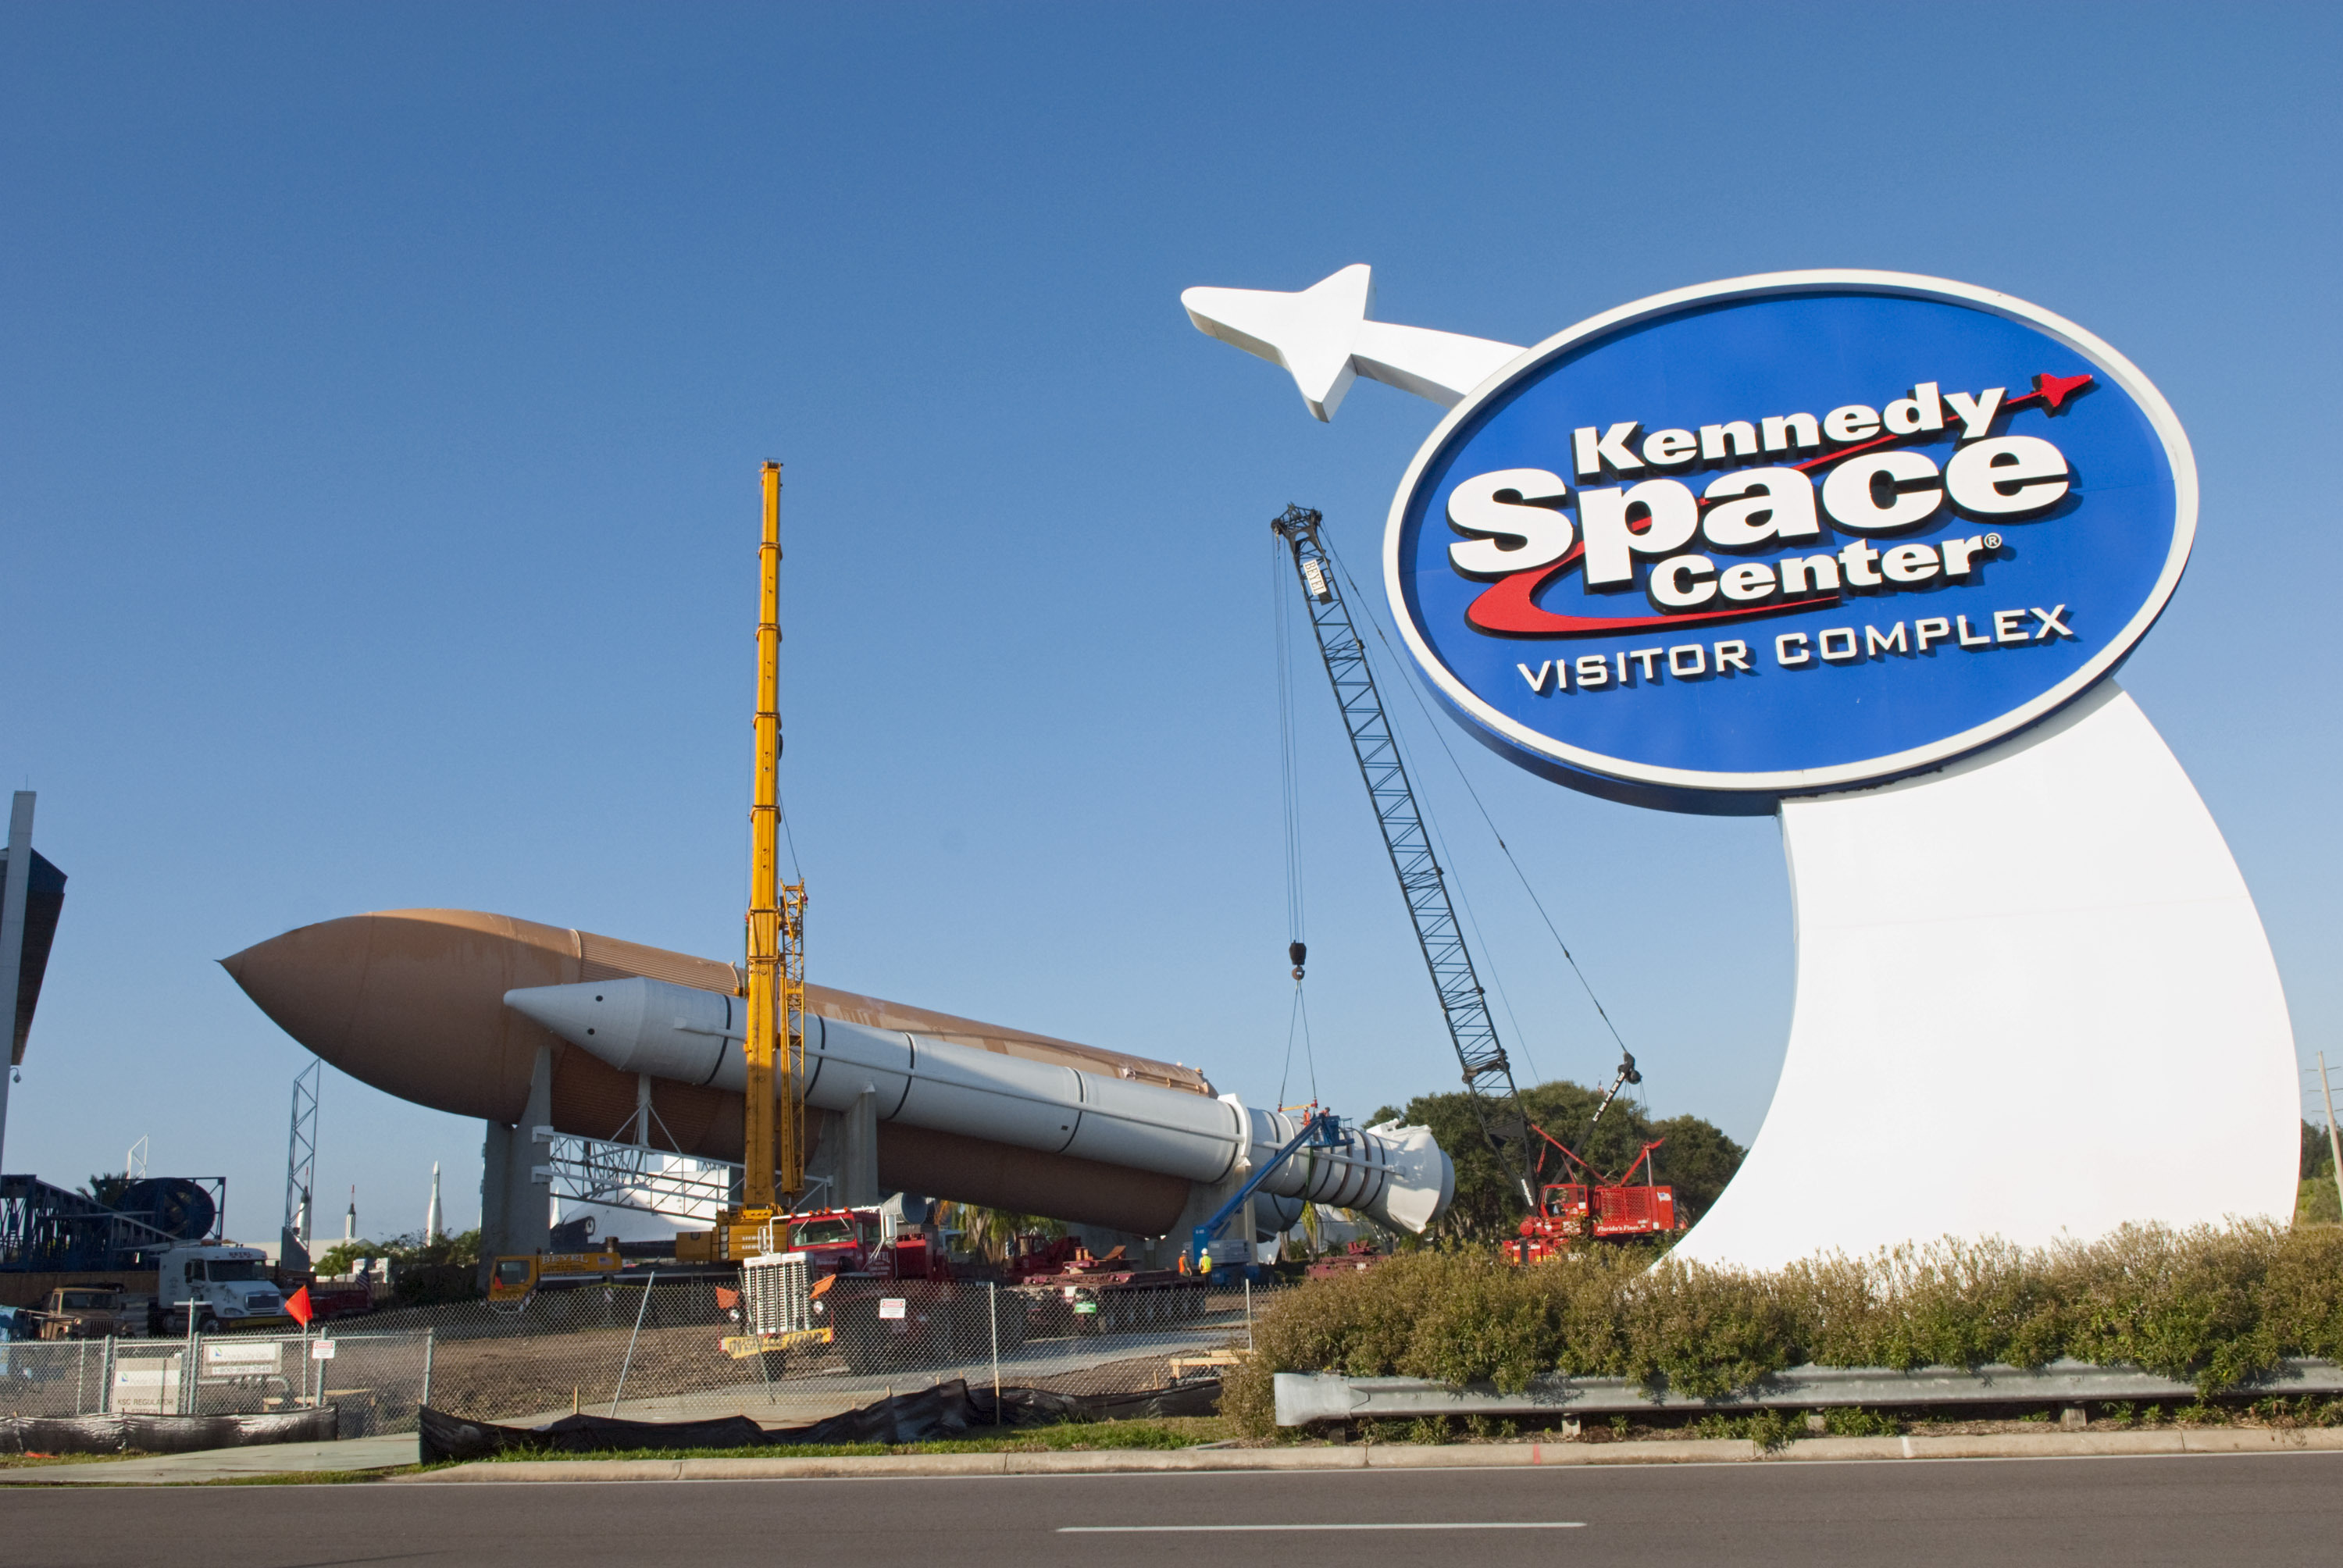 Kennedy Space Center Visitor Complex Preparing for Shuttle Display